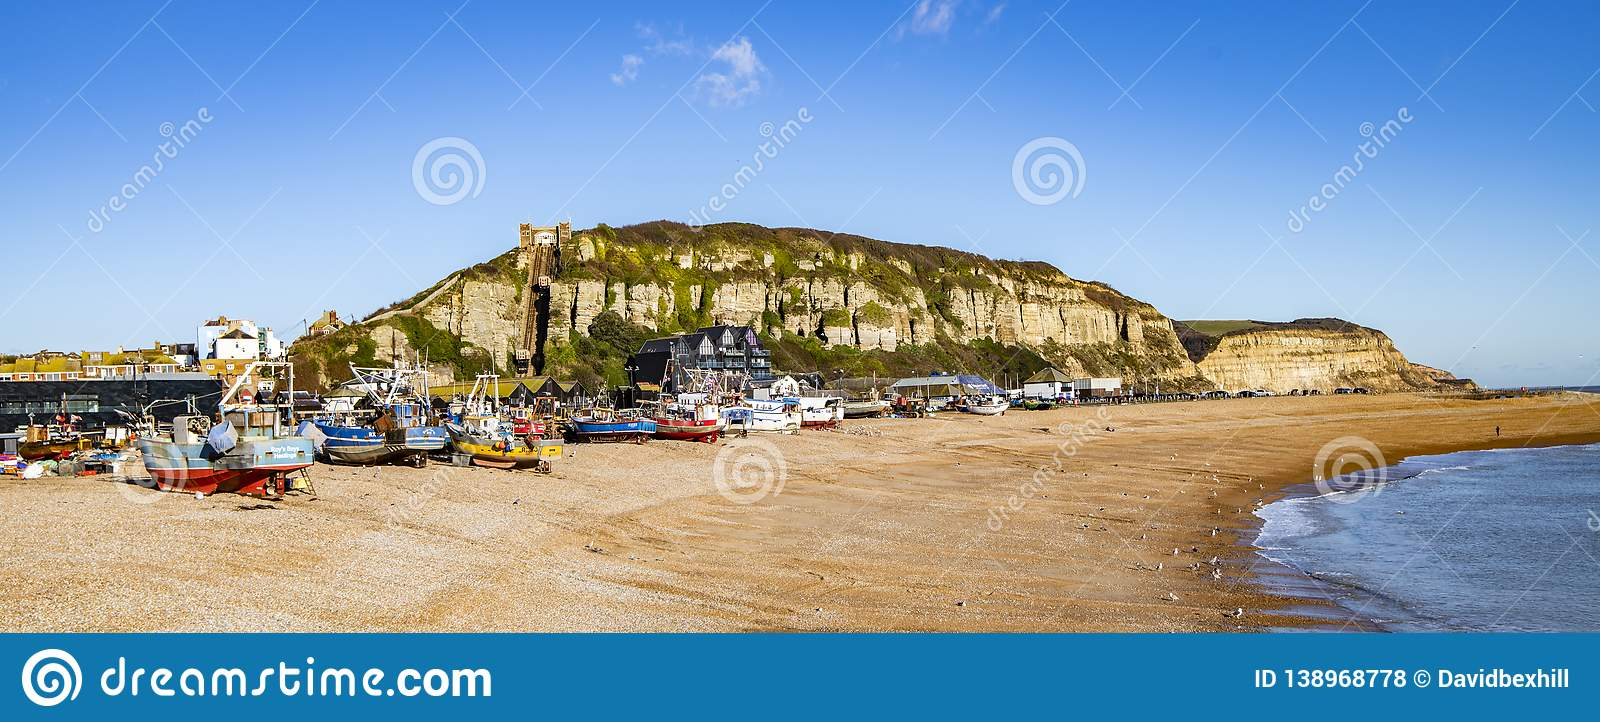 View of the Stade Fishing Quarter, Hastings, East Sussex, England